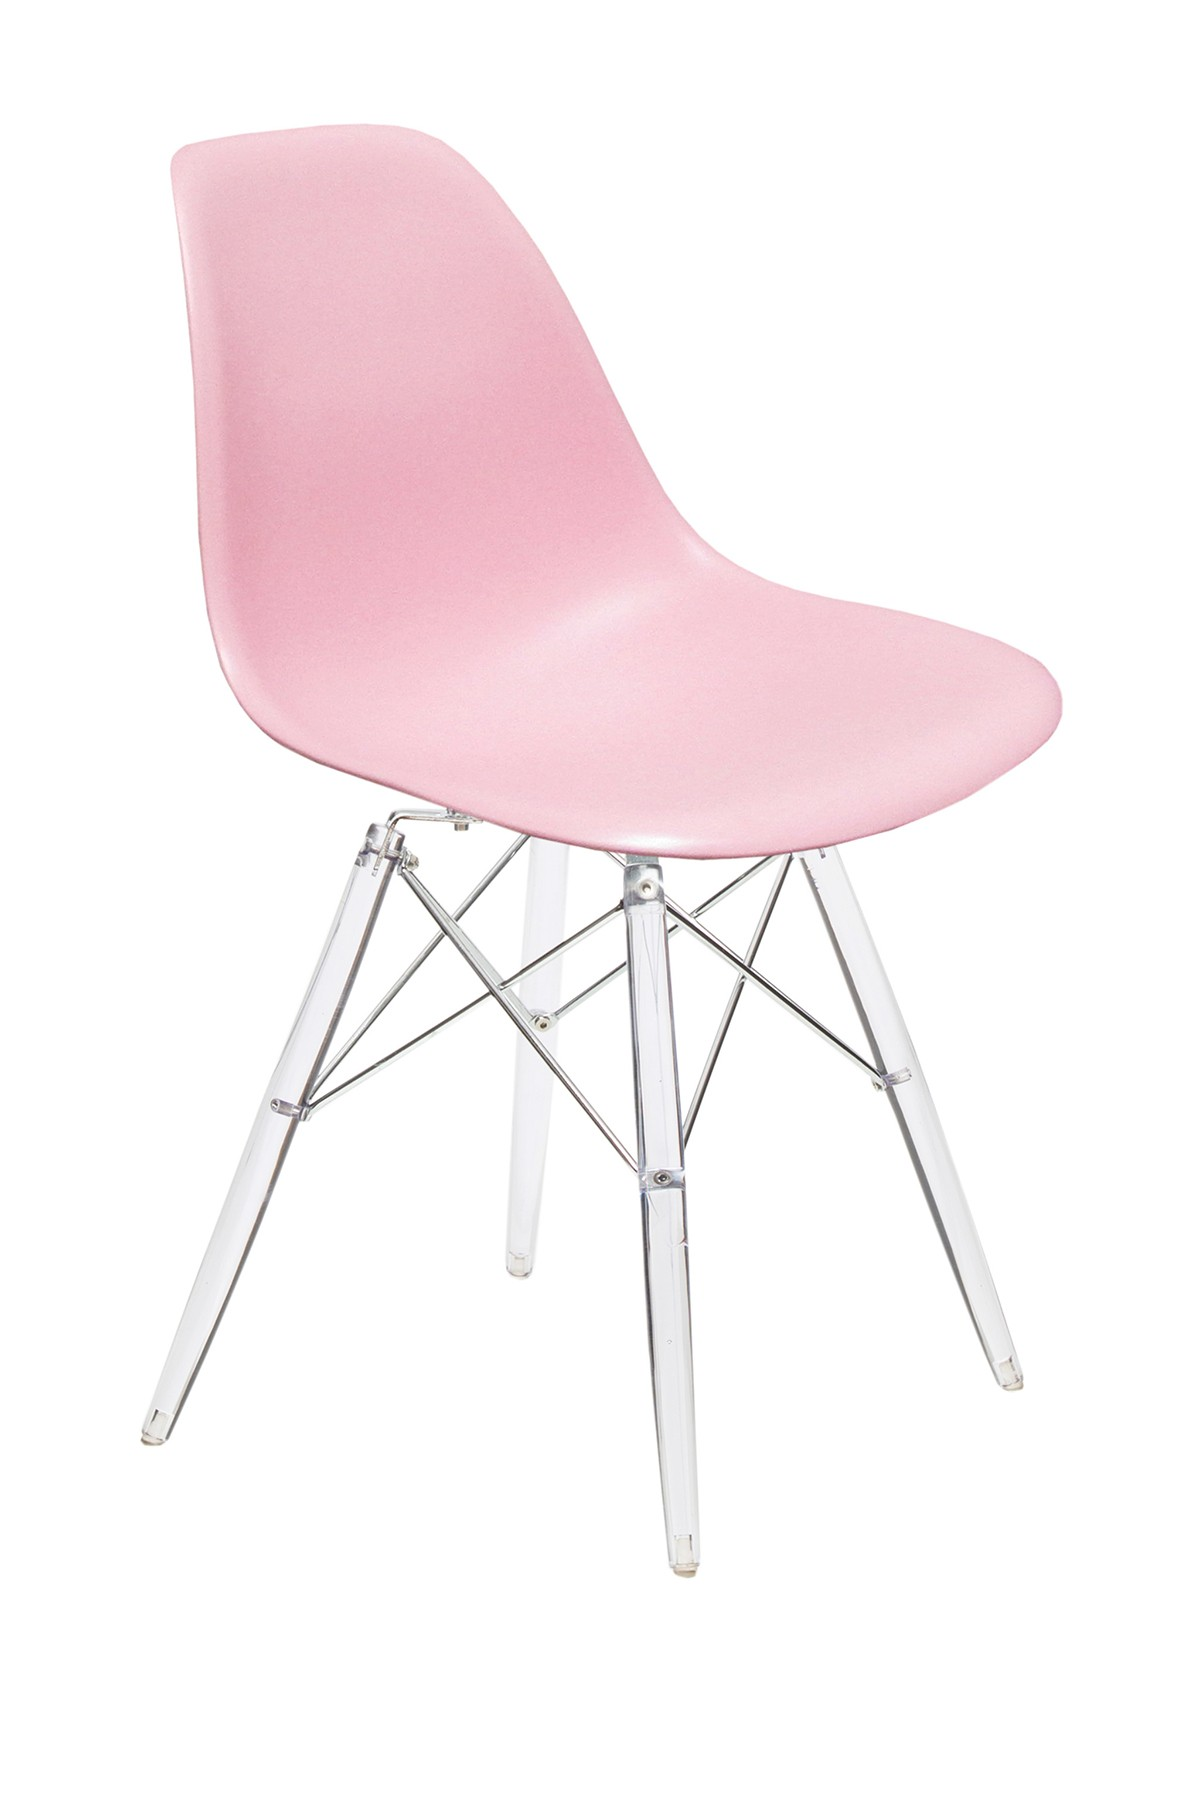 NORDSTROM RACK_Jay Imports_Banks Pink Chair_Originally $199.99_Now $69.97